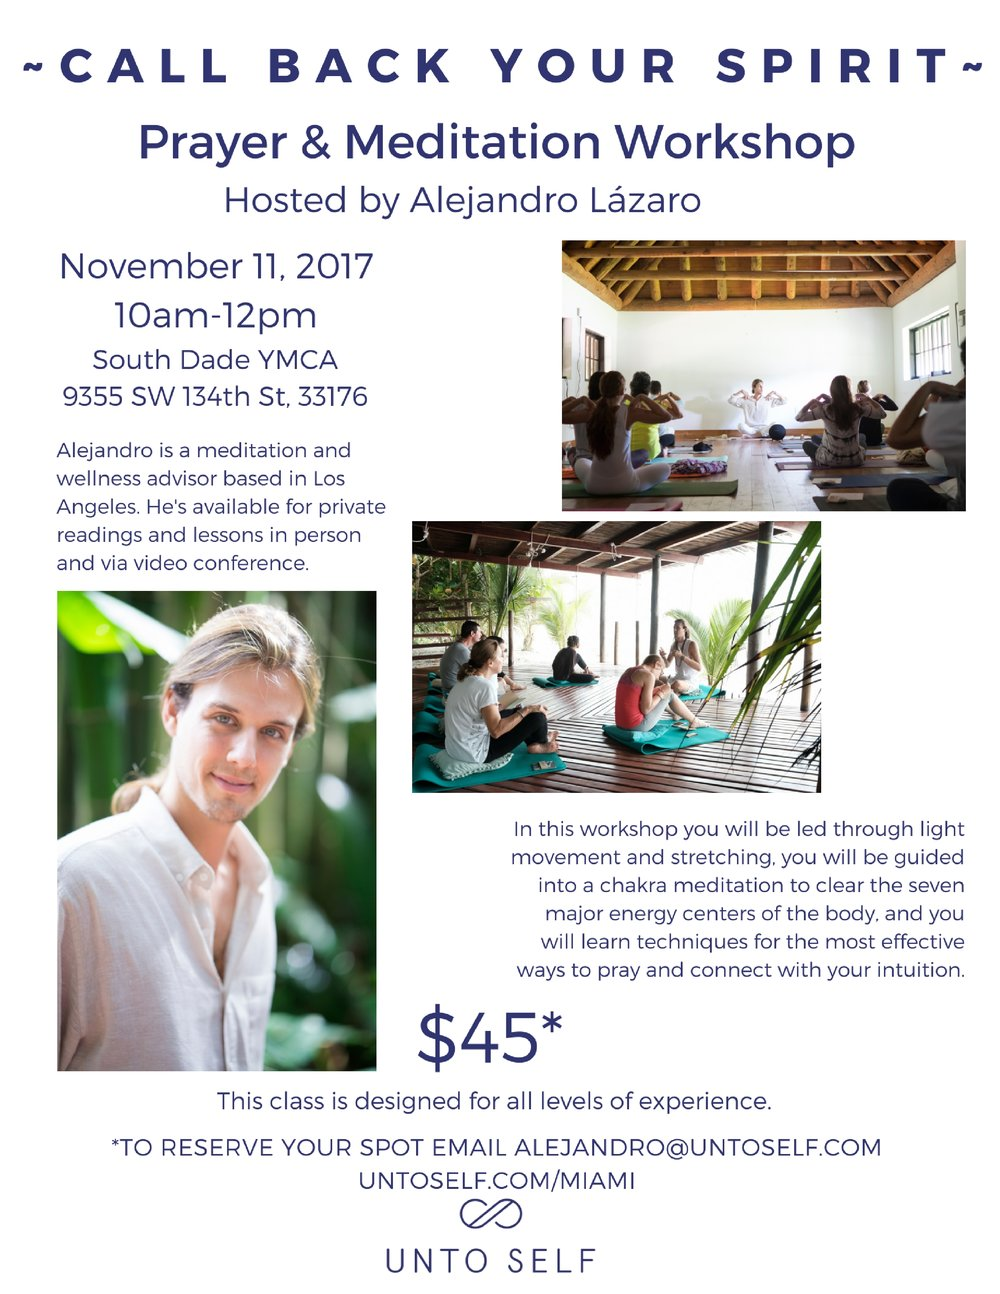 Nov 11, 2017 Prayer & Meditation Workshop.jpg